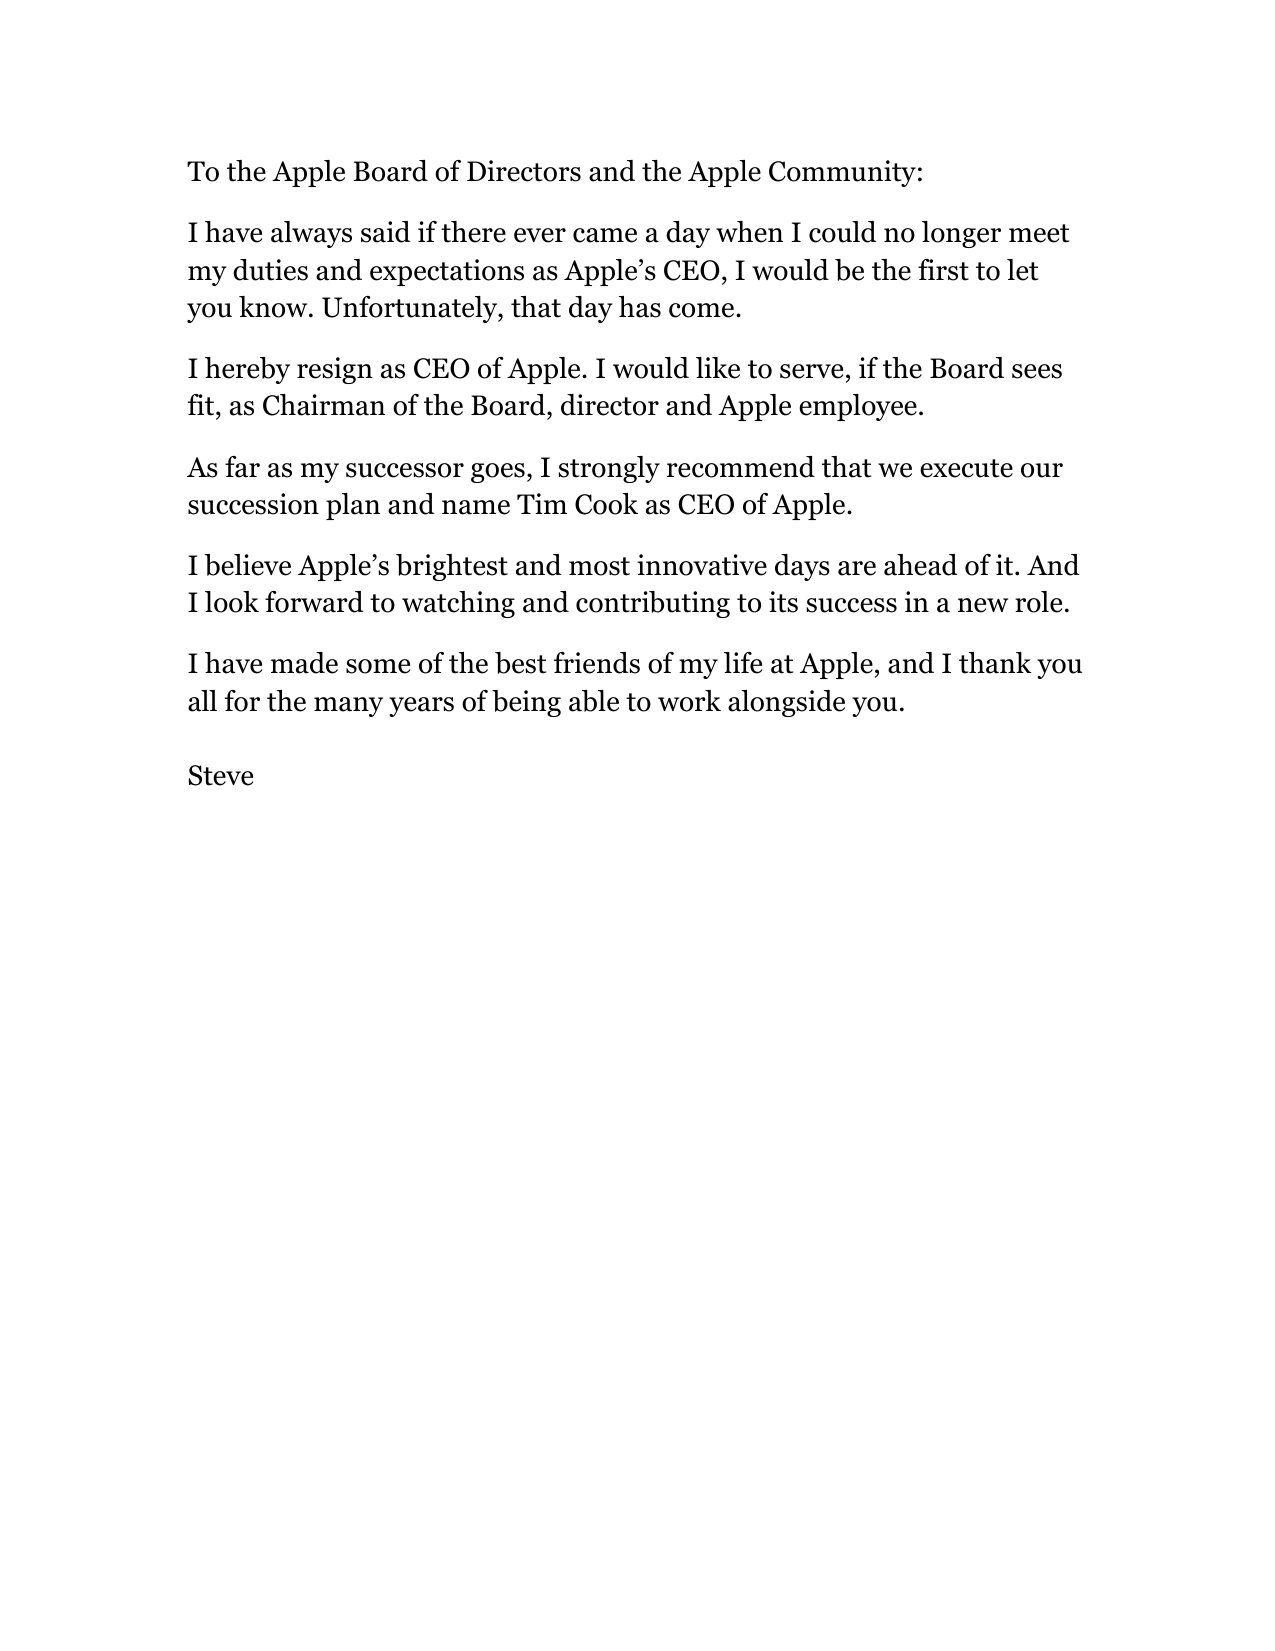 Steve Jobsu0027 Resignation Letter To Apple Inc.